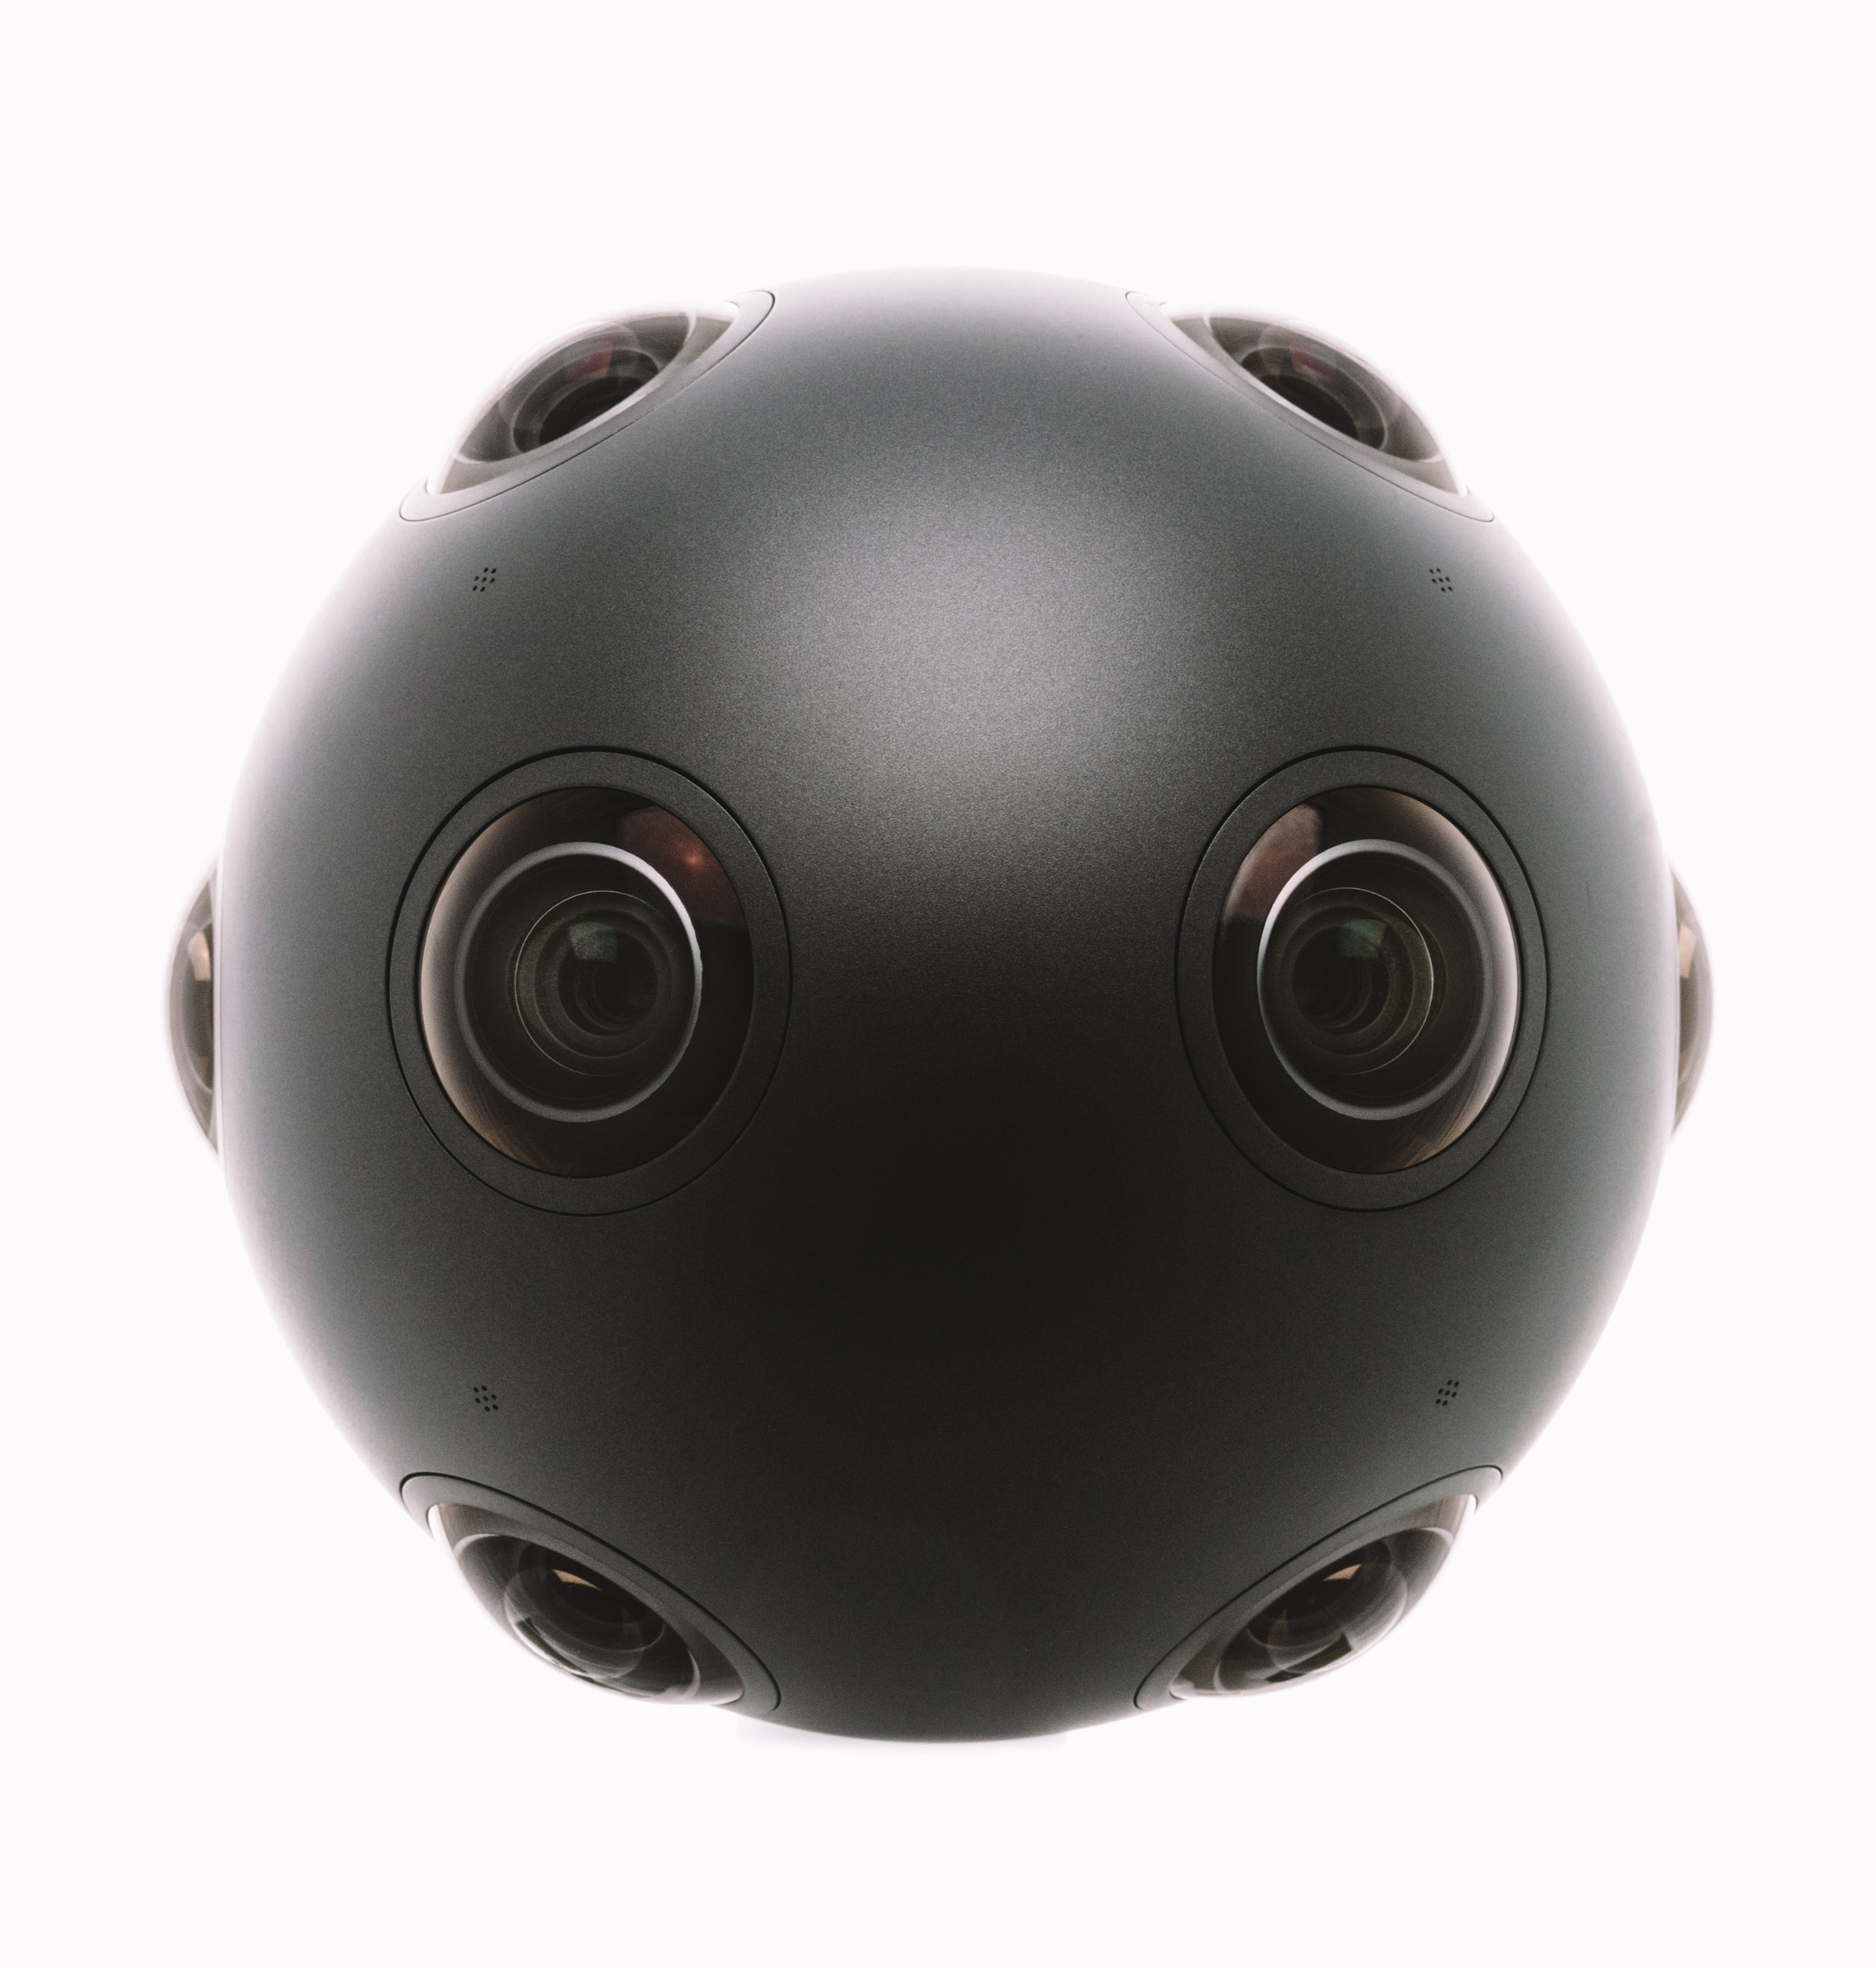 Nokia OZO 3D Virtual Reality Video Camera Sees and Hears All